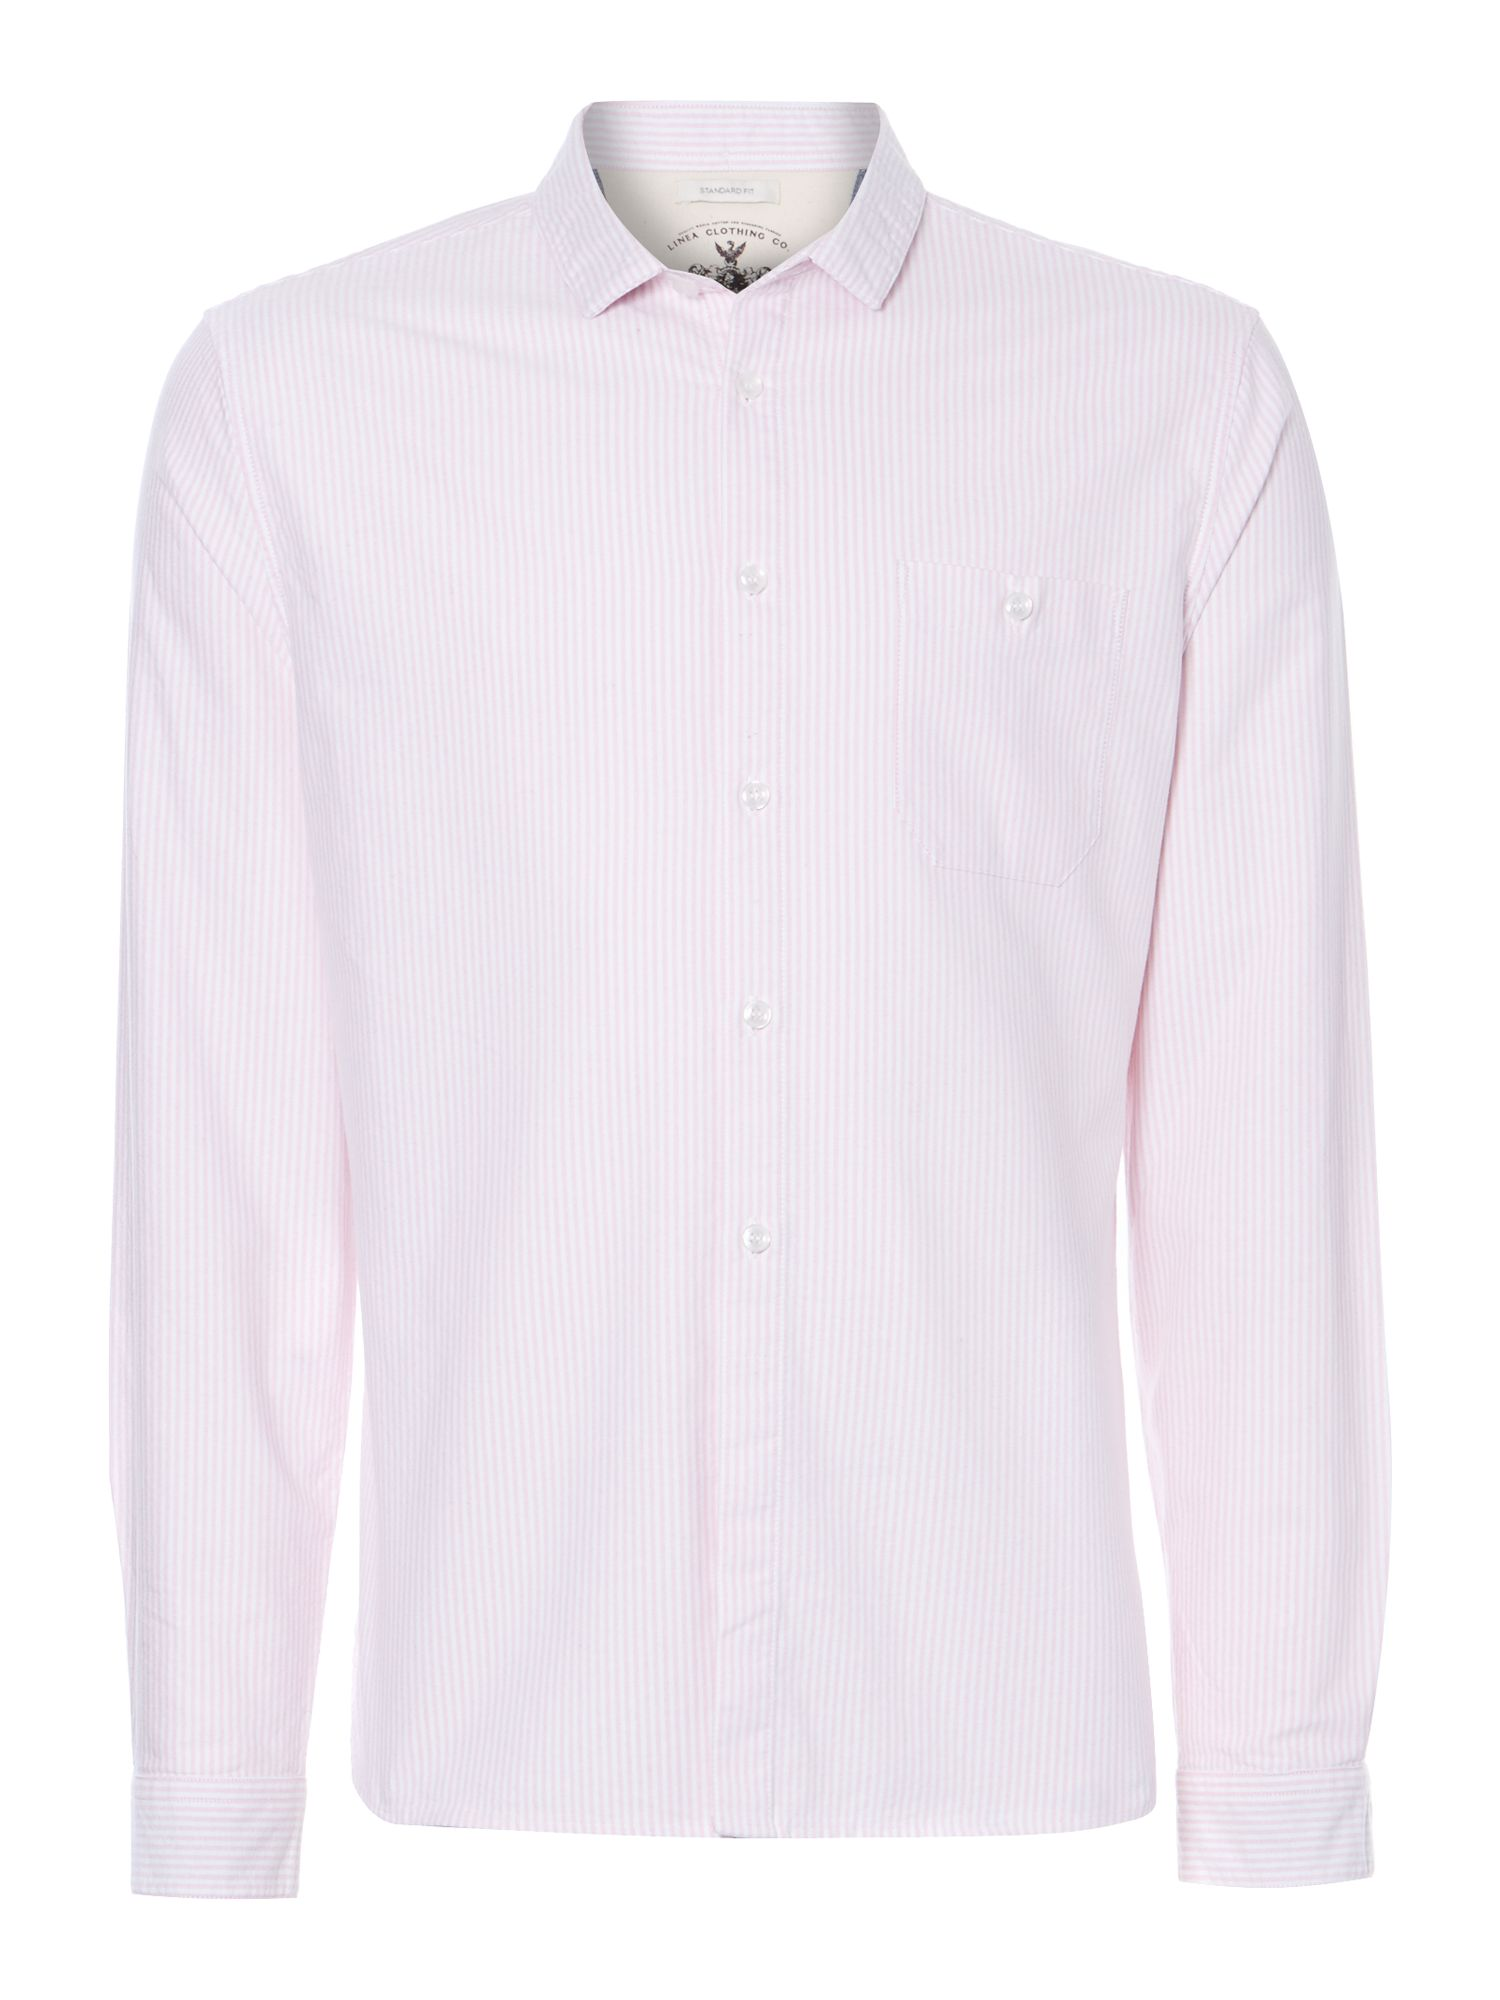 samson oxford striped long sleeved shirt